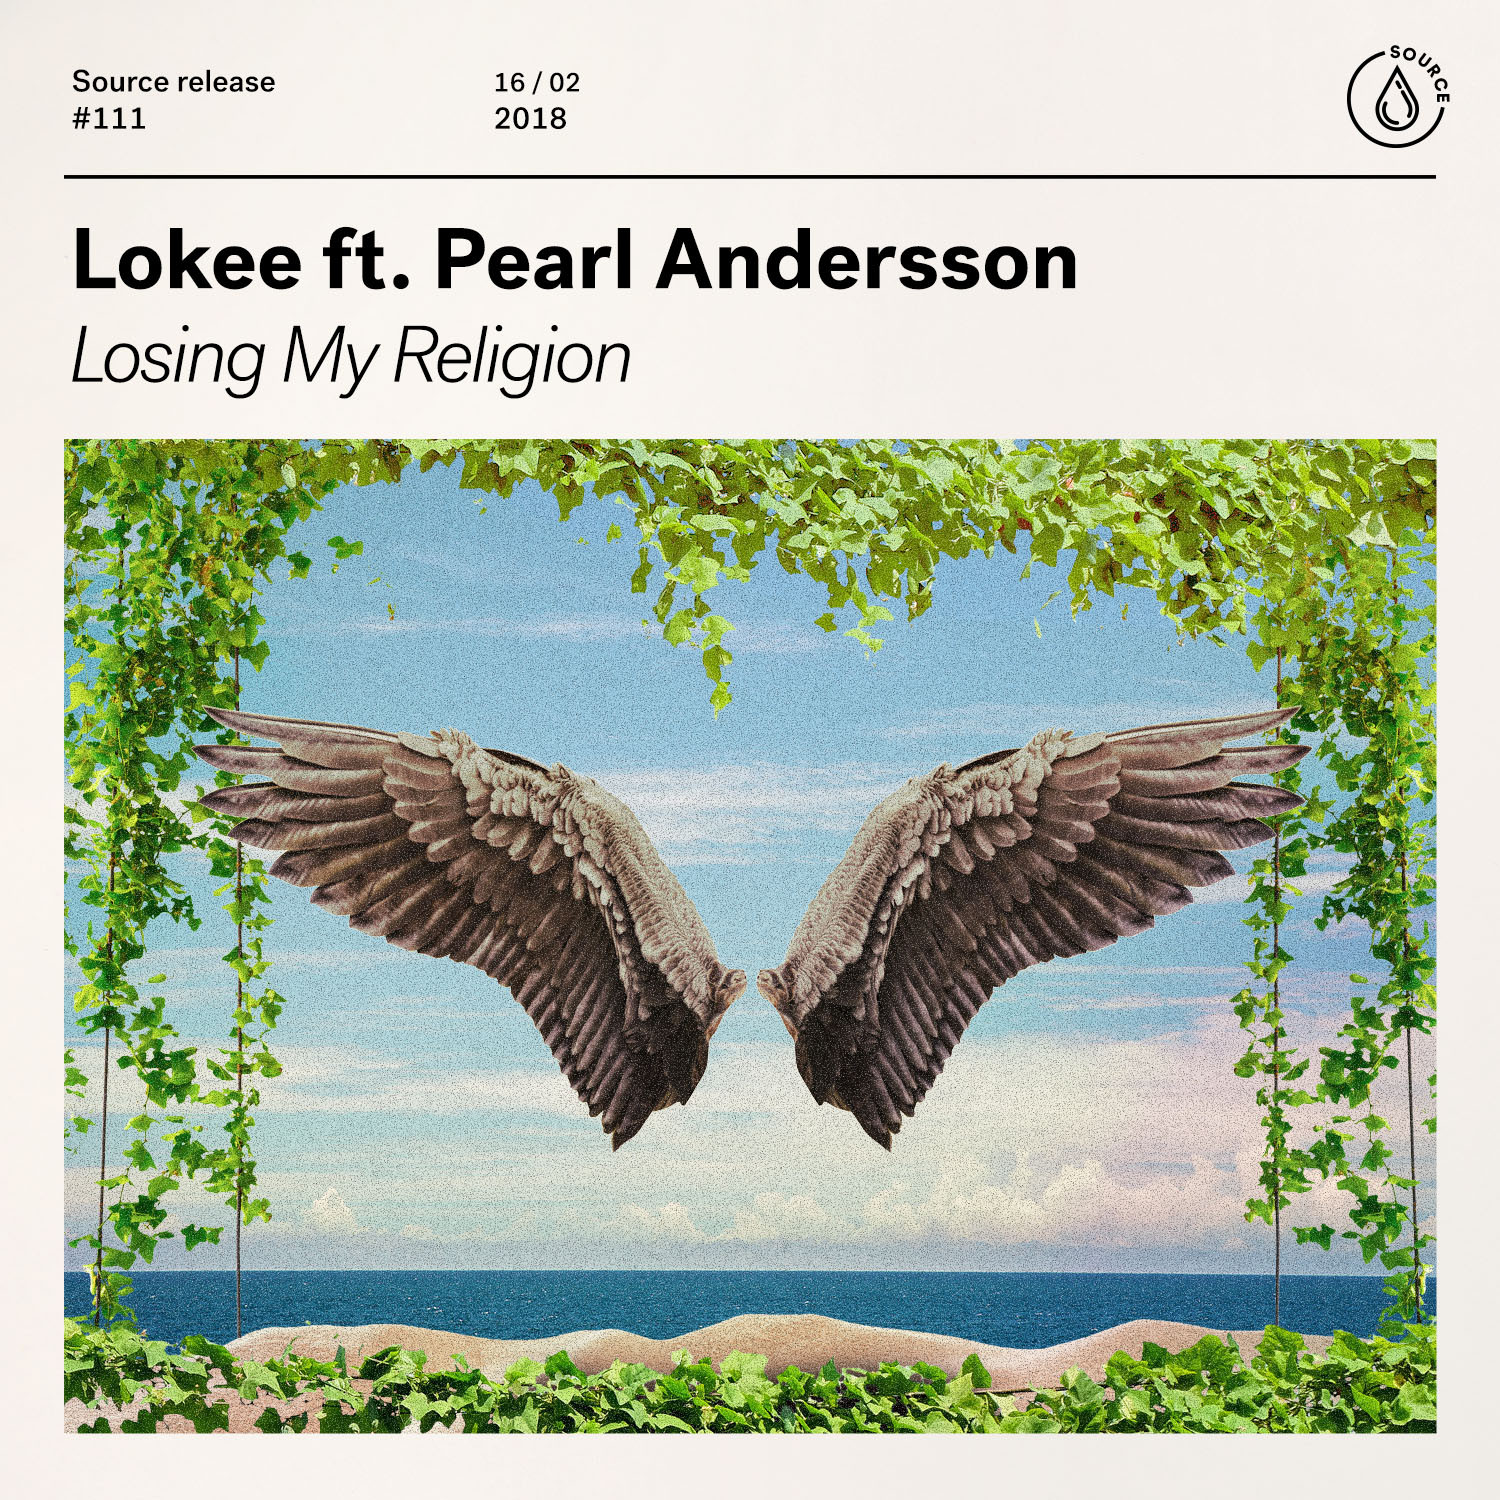 Losing My Religion Lokee Ft Pearl Andersson Source